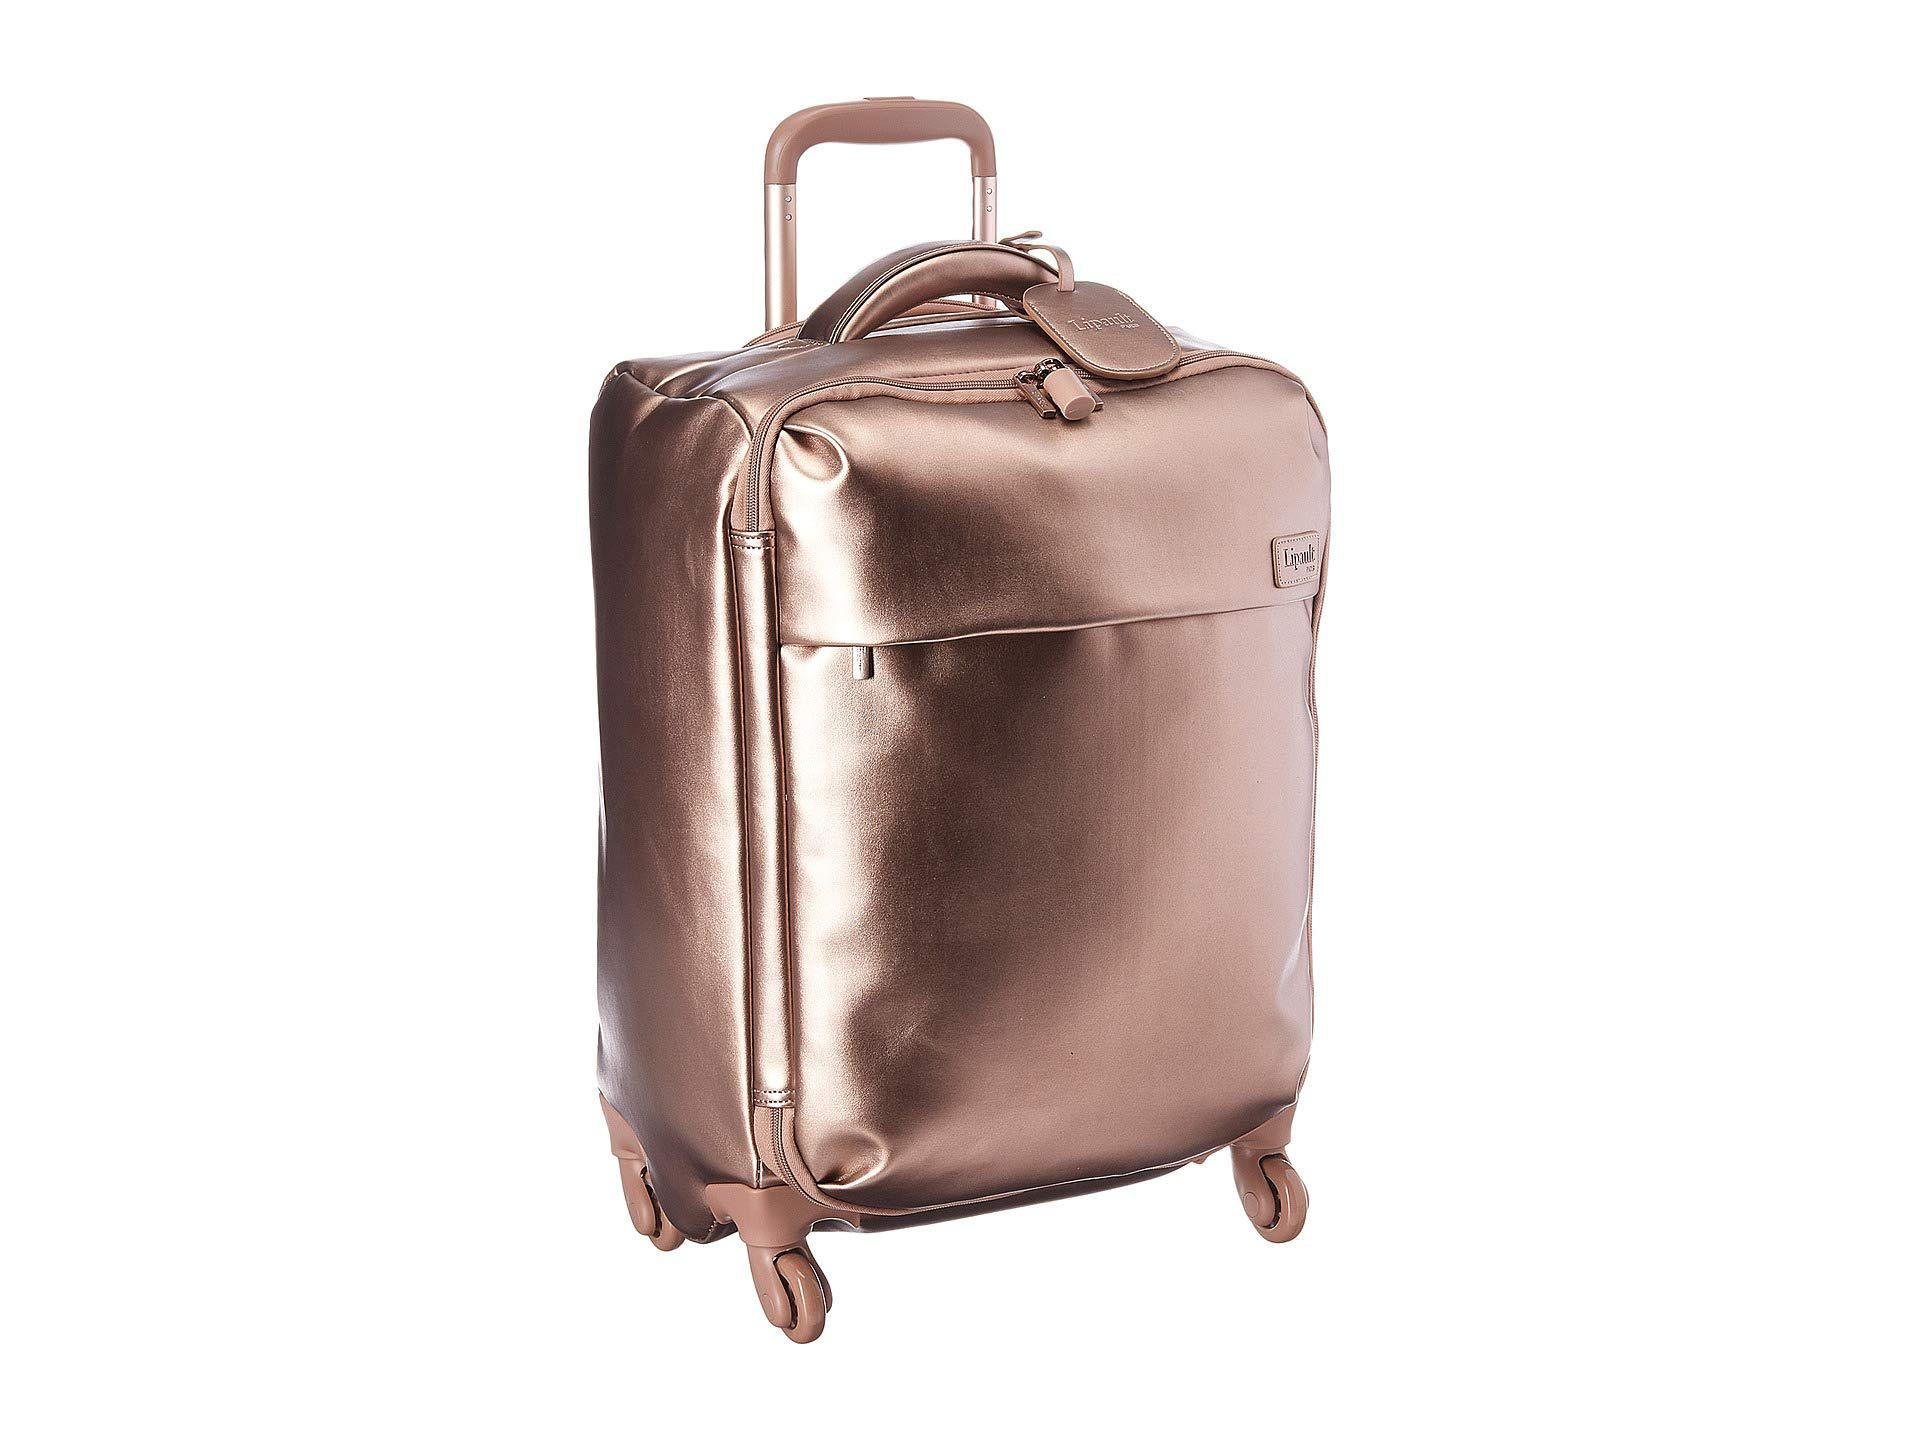 e58a74220 Lyst - Lipault 22 Miss Plume Spinner (titanium) Luggage in Pink